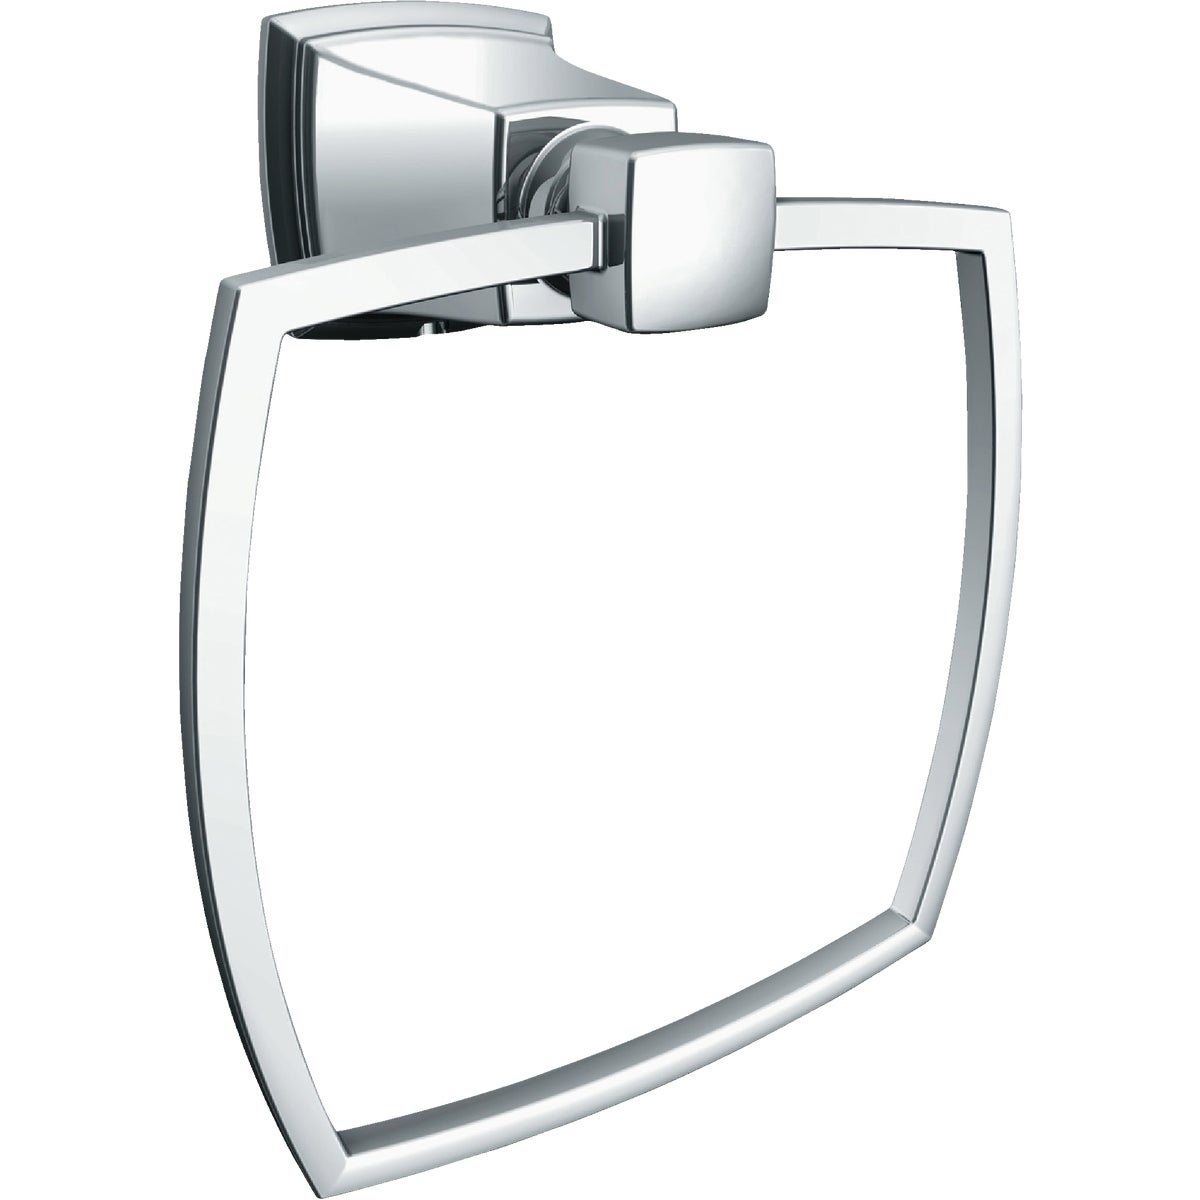 CHROME TOWEL RING - Y3286CH by C S I Donner